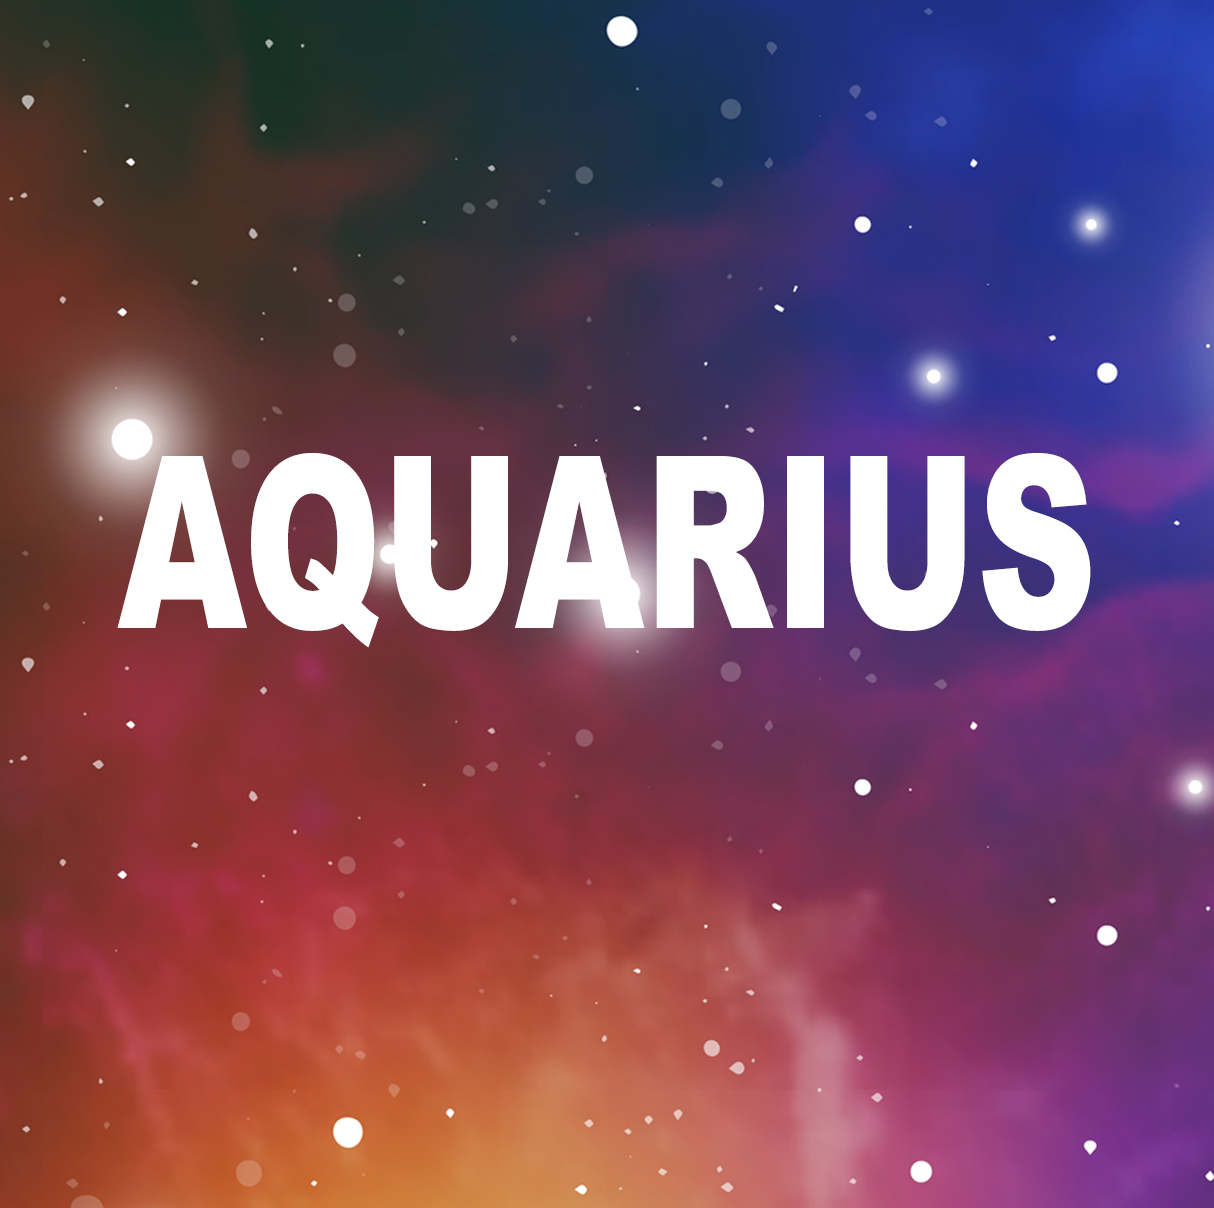 aquarius, aquarius 2018 horoscope, aquarius 2018 tarot, aquarius 2018 tarot card spread